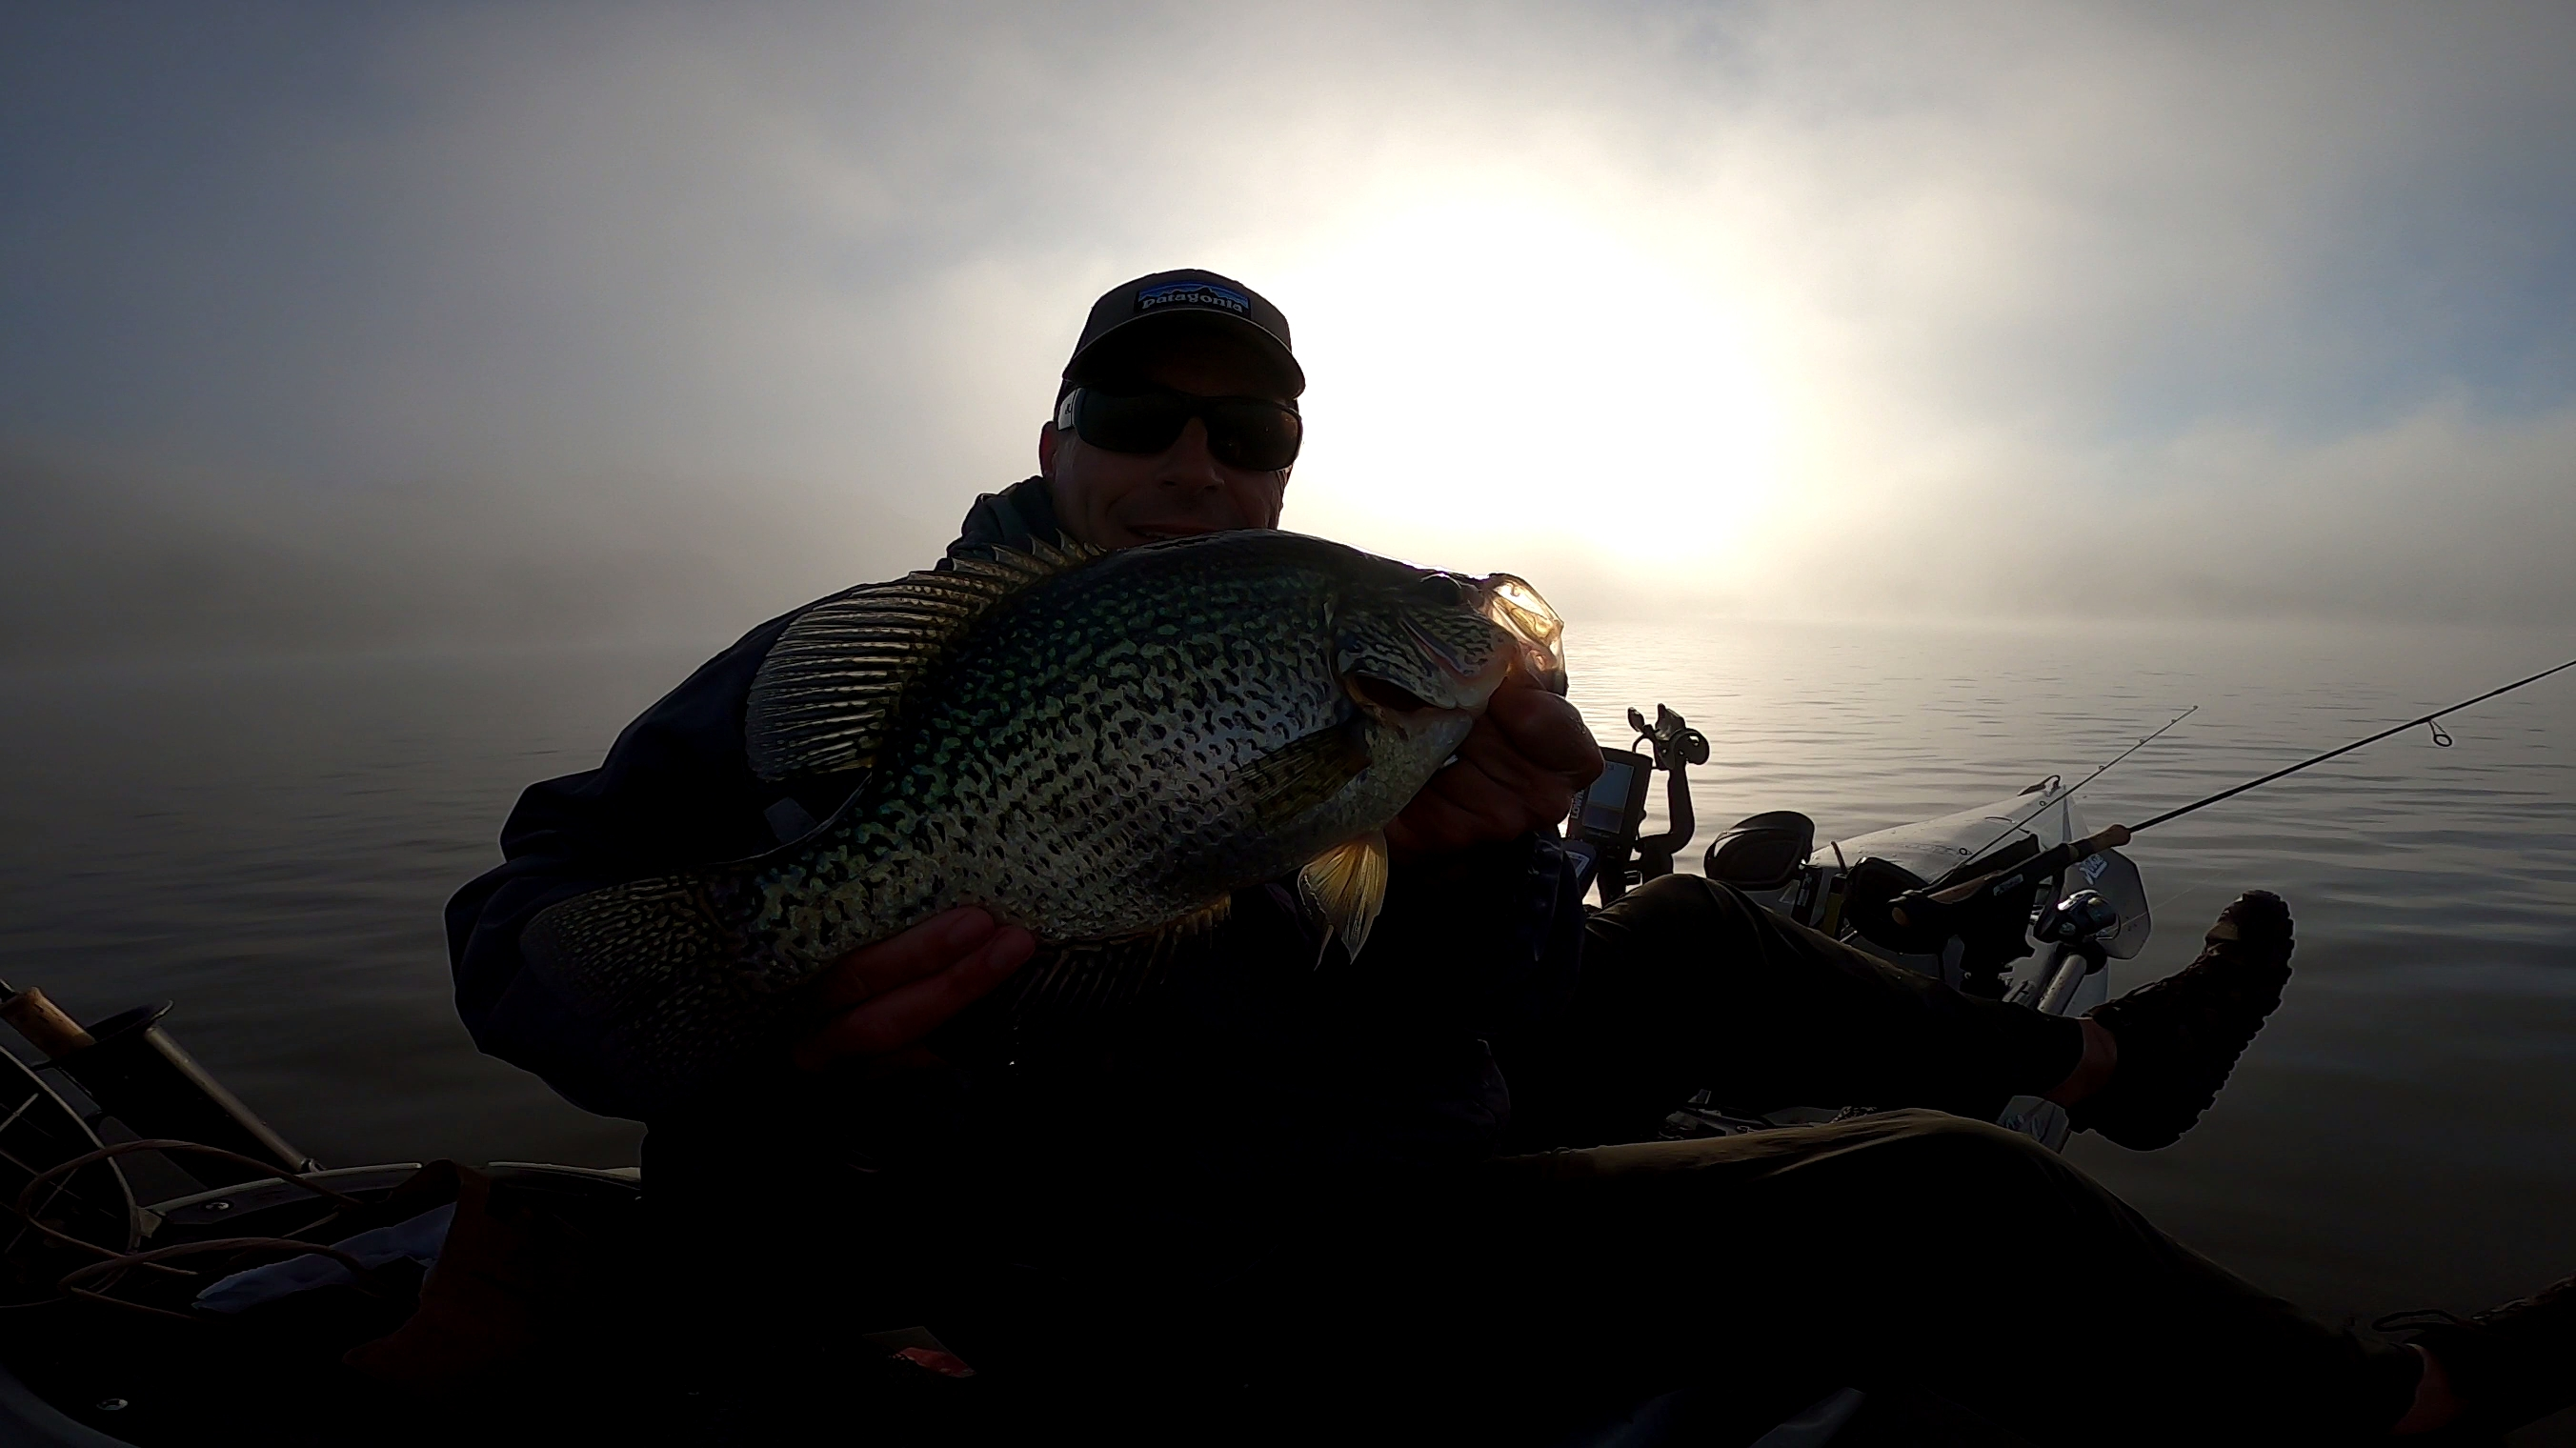 aGH010223 Hold Crappie 1 Photo.jpg